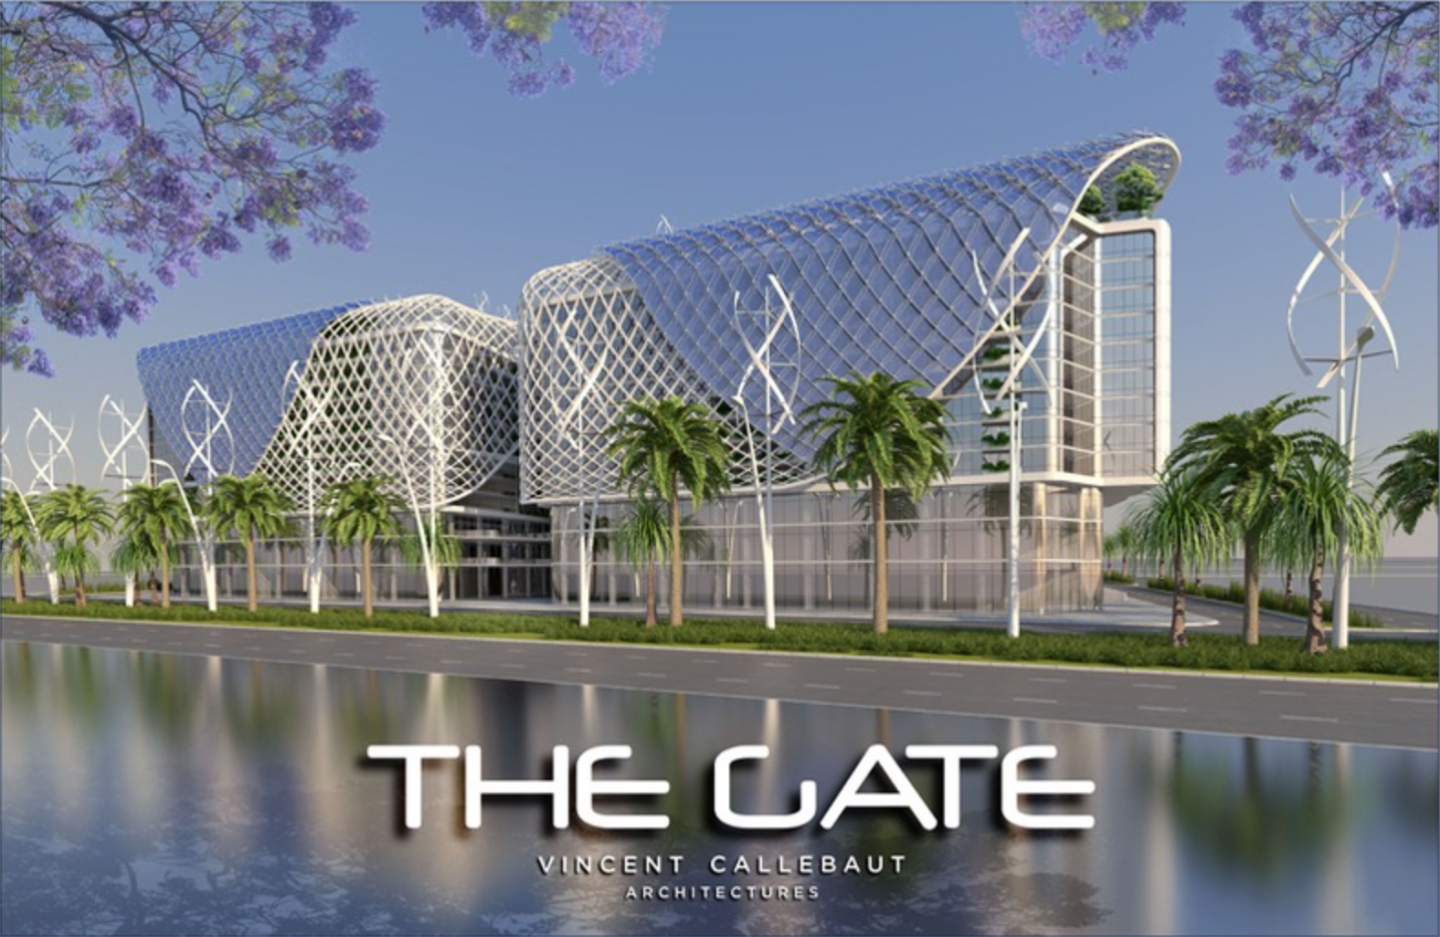 The Gate, Egypt's future eco-friendly complex, will cost approximately $589 million.